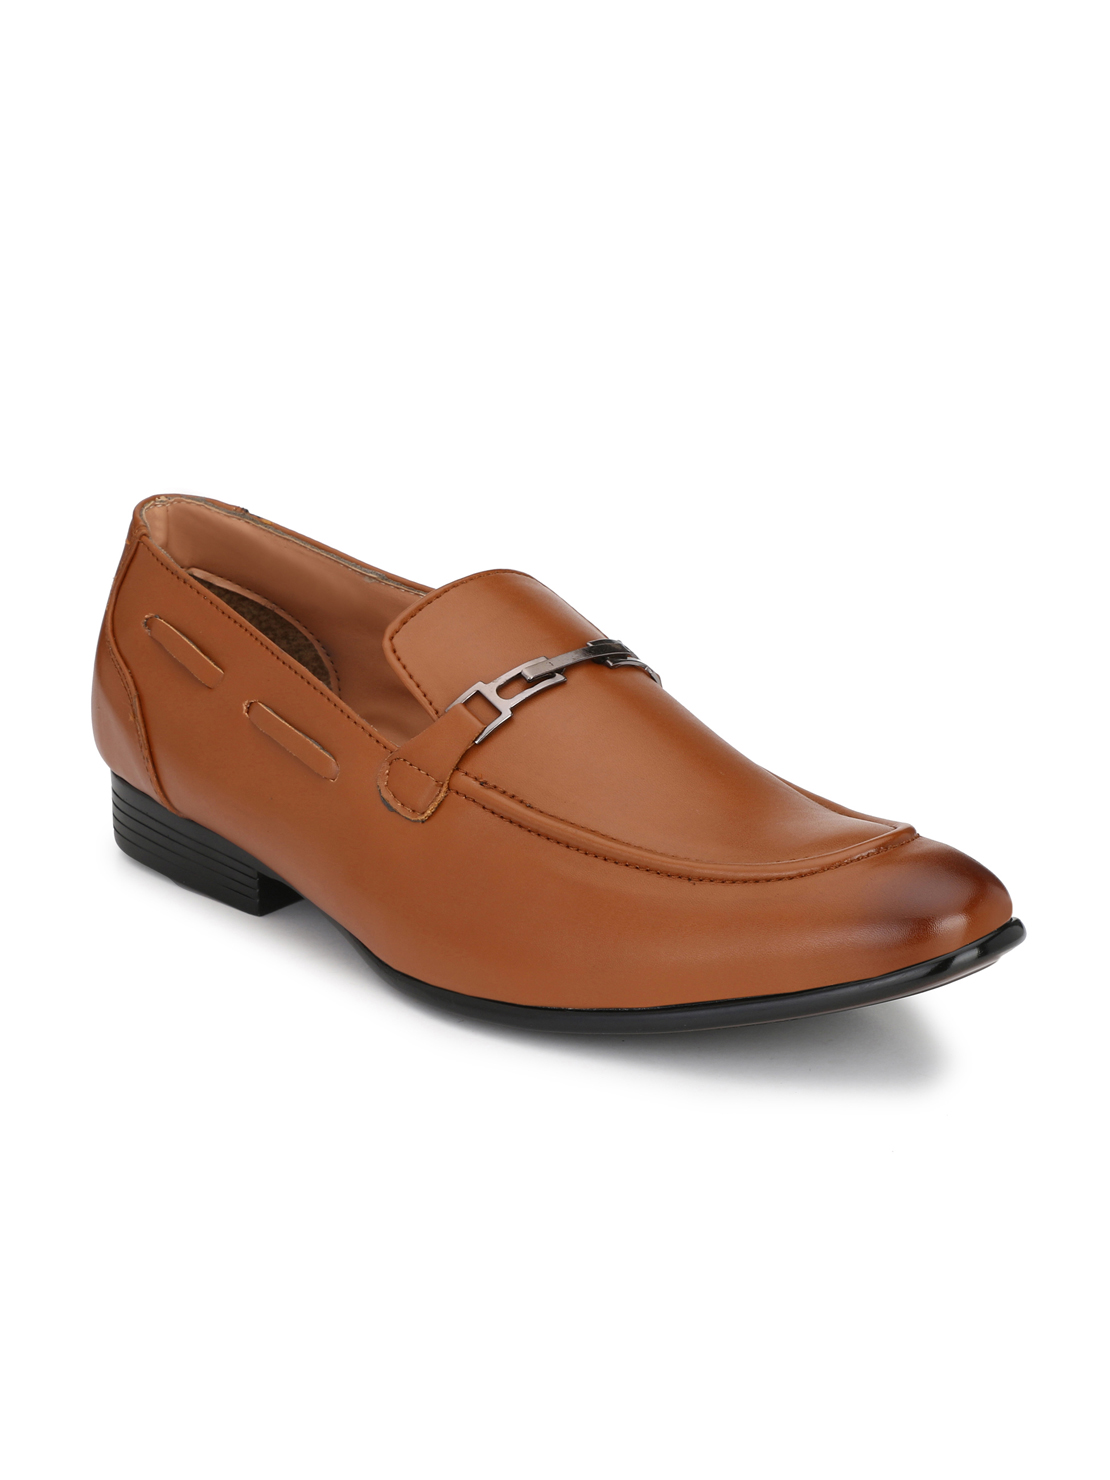 Guava | Guava Men's Penny formal Loafers - Tan